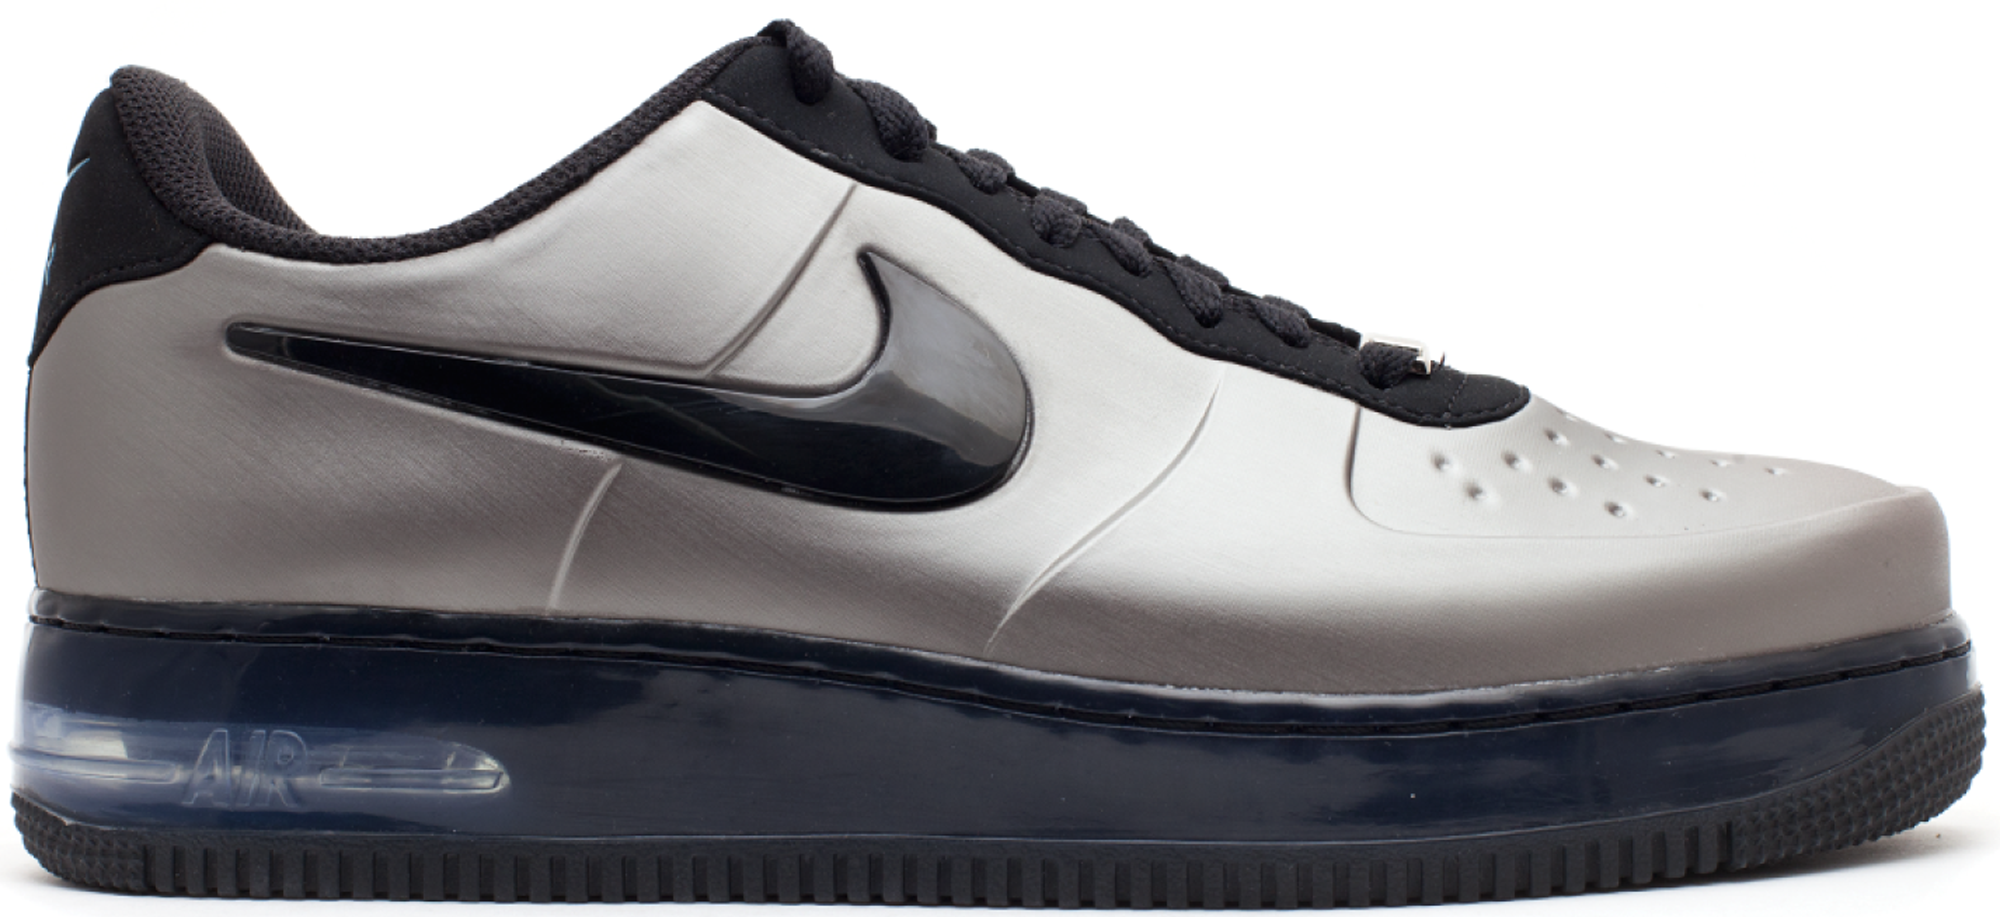 nike air force 1 foamposite for sale